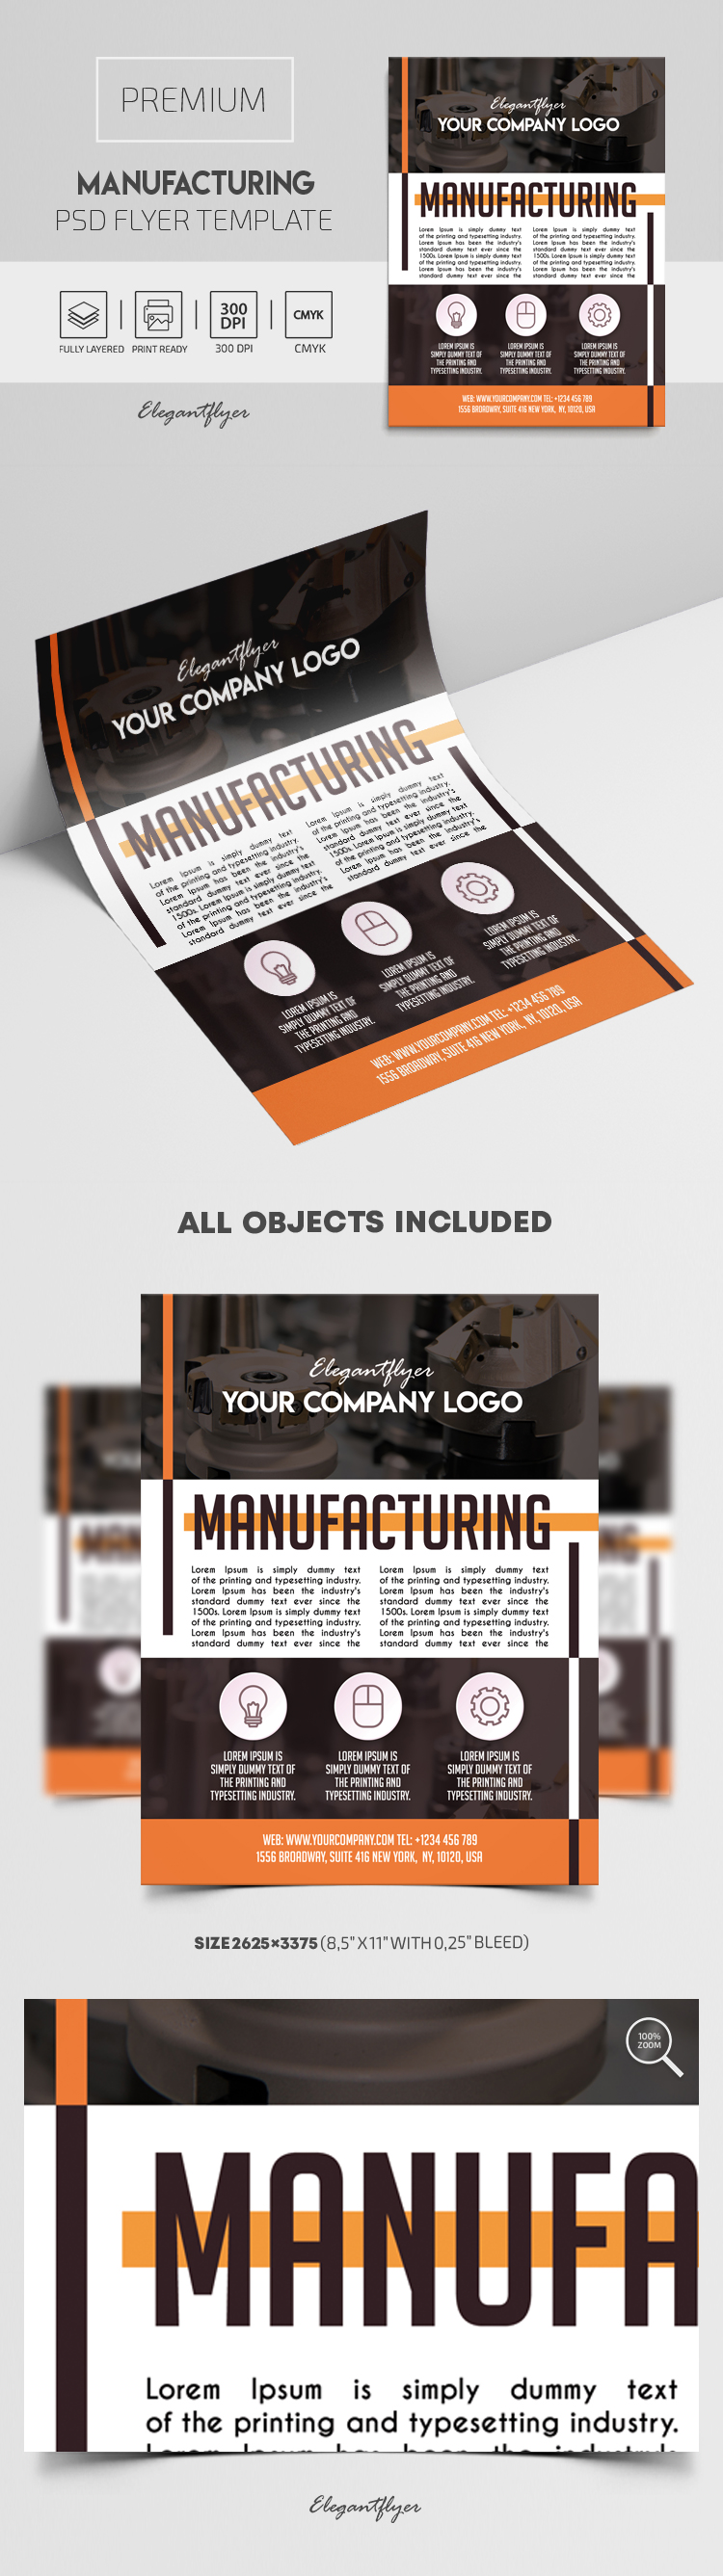 Manufacturing – Premium PSD Flyer Template